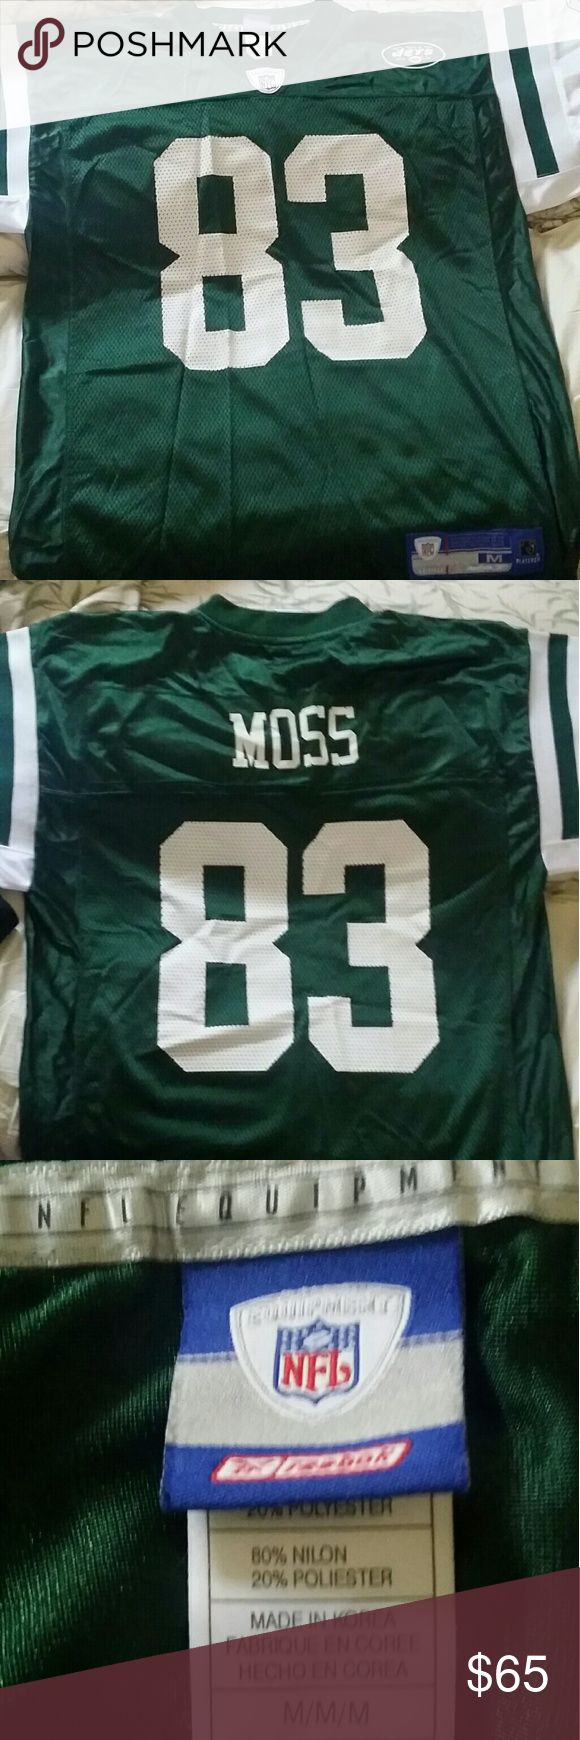 Jets jersey #83 Moss Green and white jersey. Brand new. Worn only one time. Bit crinkled from being in storage. But perfect condition. See pics for more details. Reebok Shirts